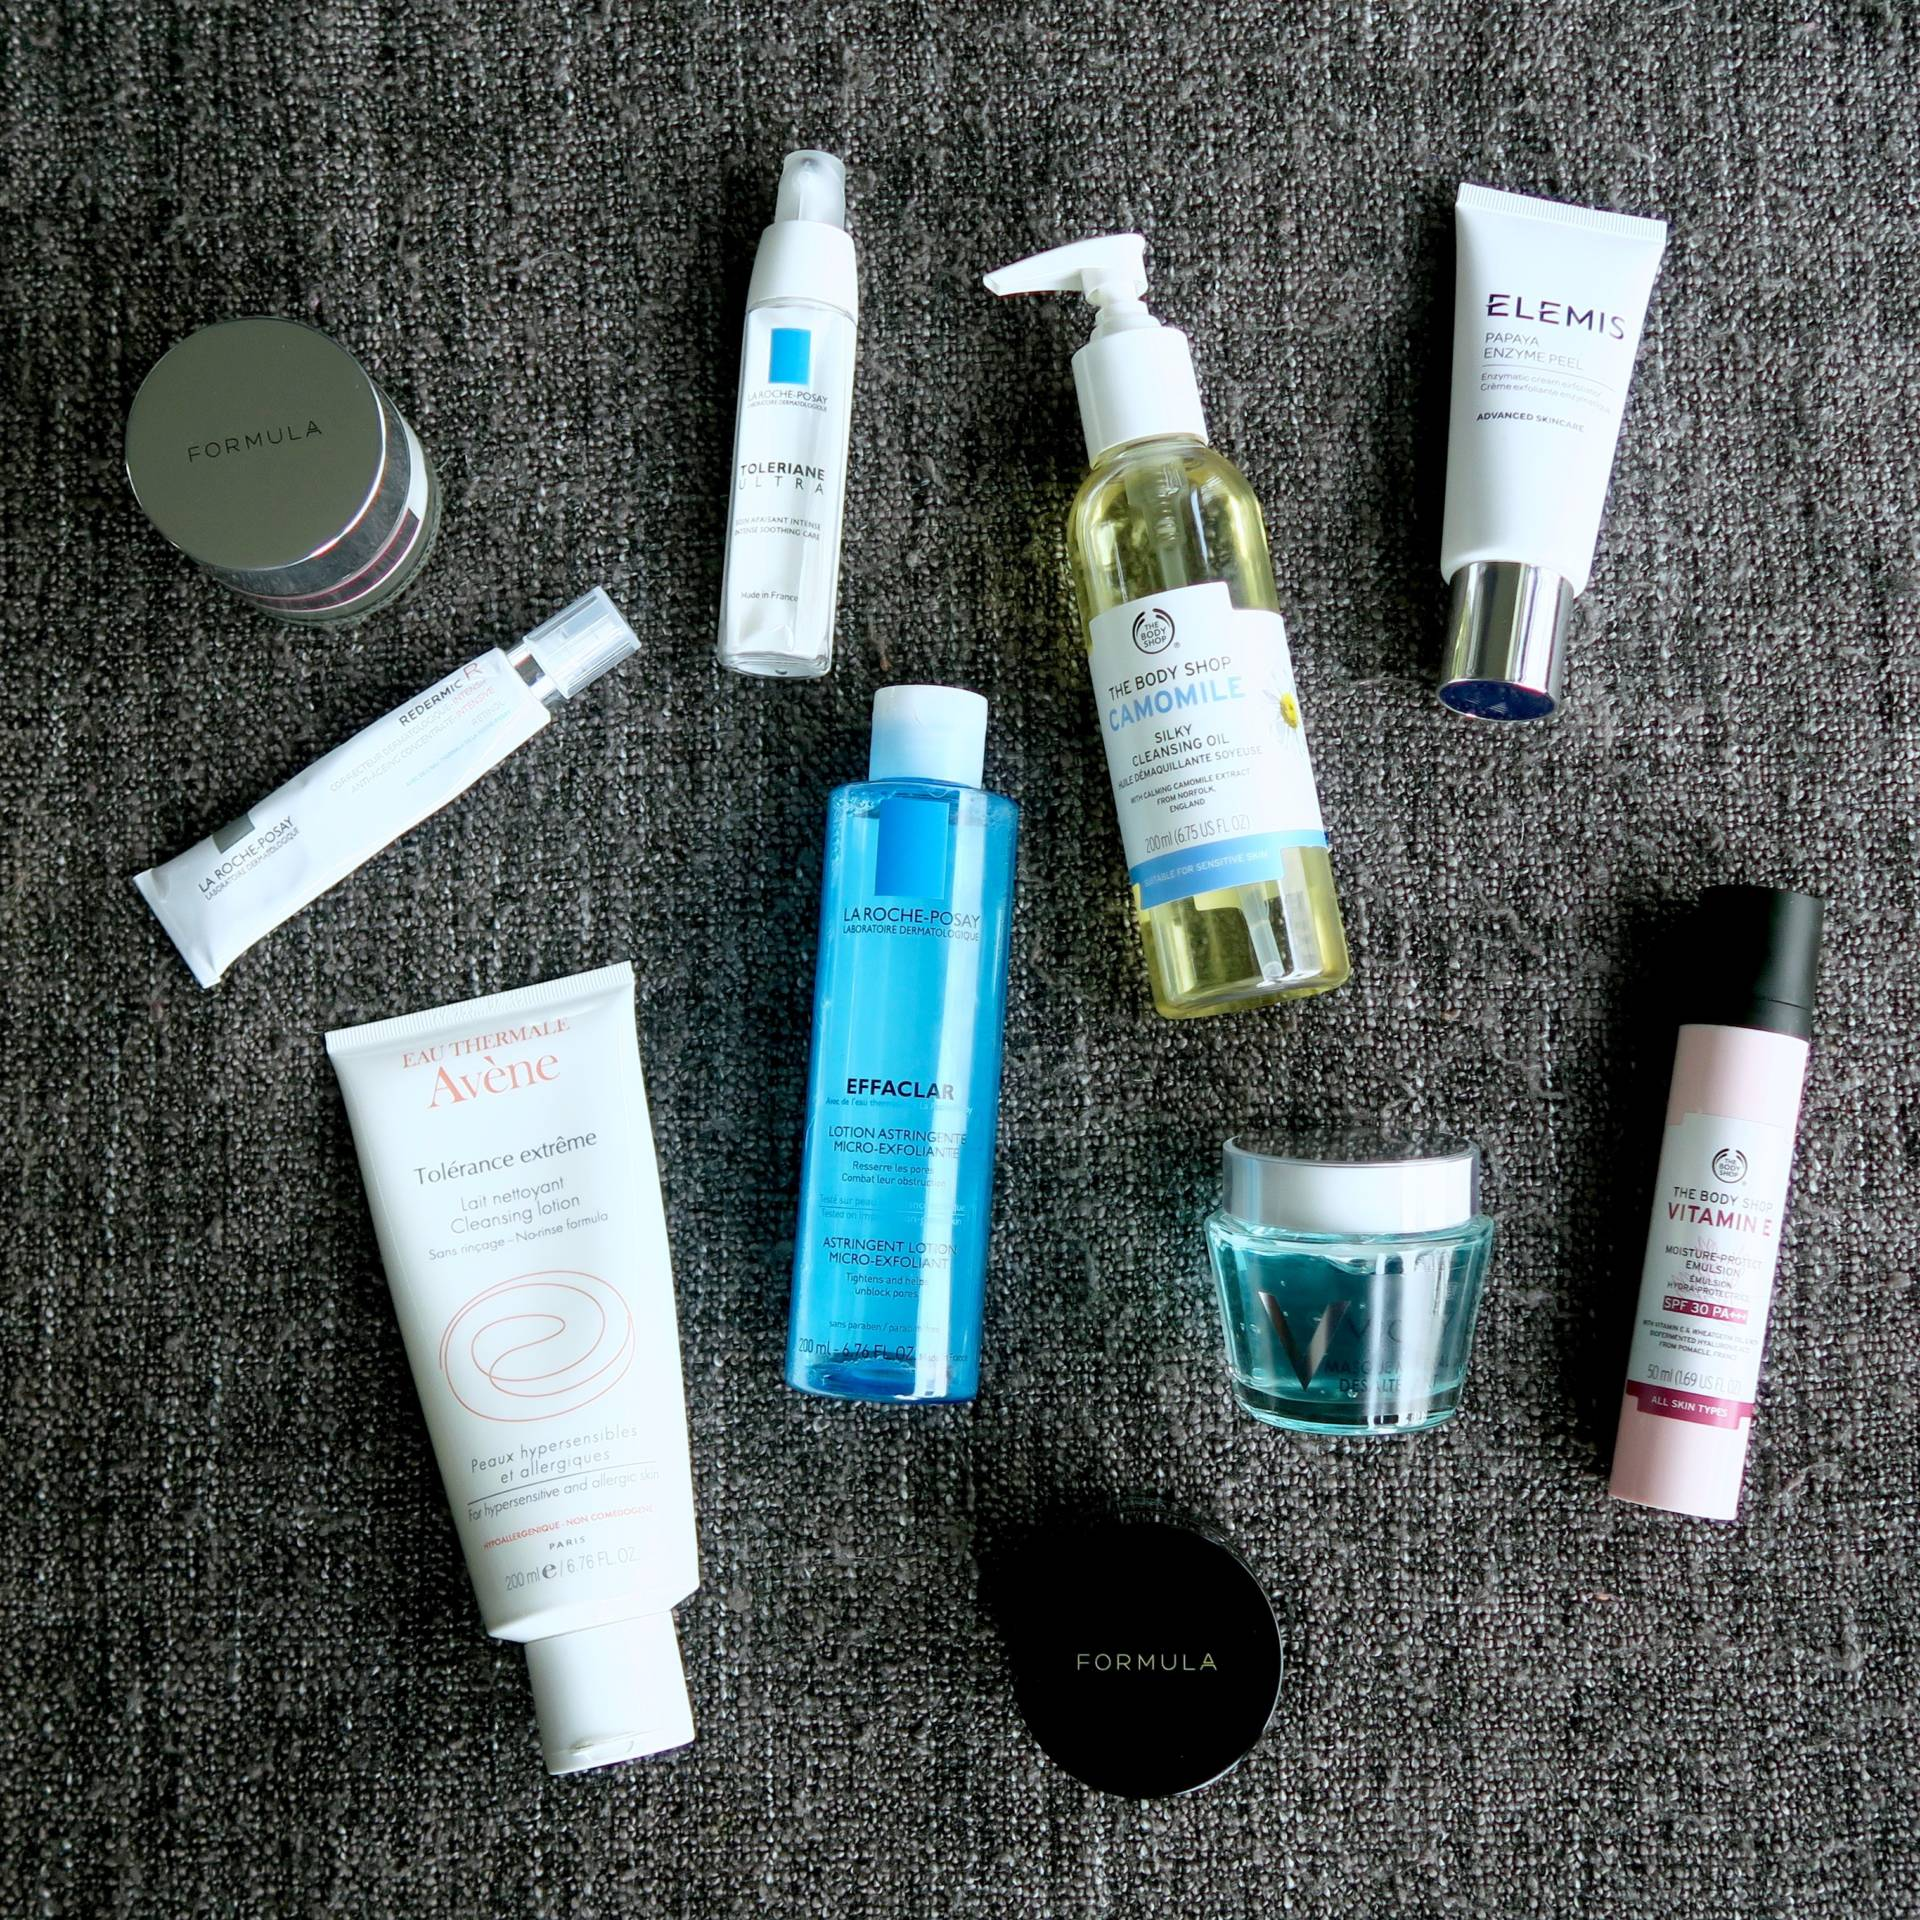 Skincare Shake Up October 2016: All of the skincare I've been using recently that helps my sensitive skin and rosacea. Feat. La Roche-Posay, Avène, M&S, The Body Shop, Elemis and Vichy